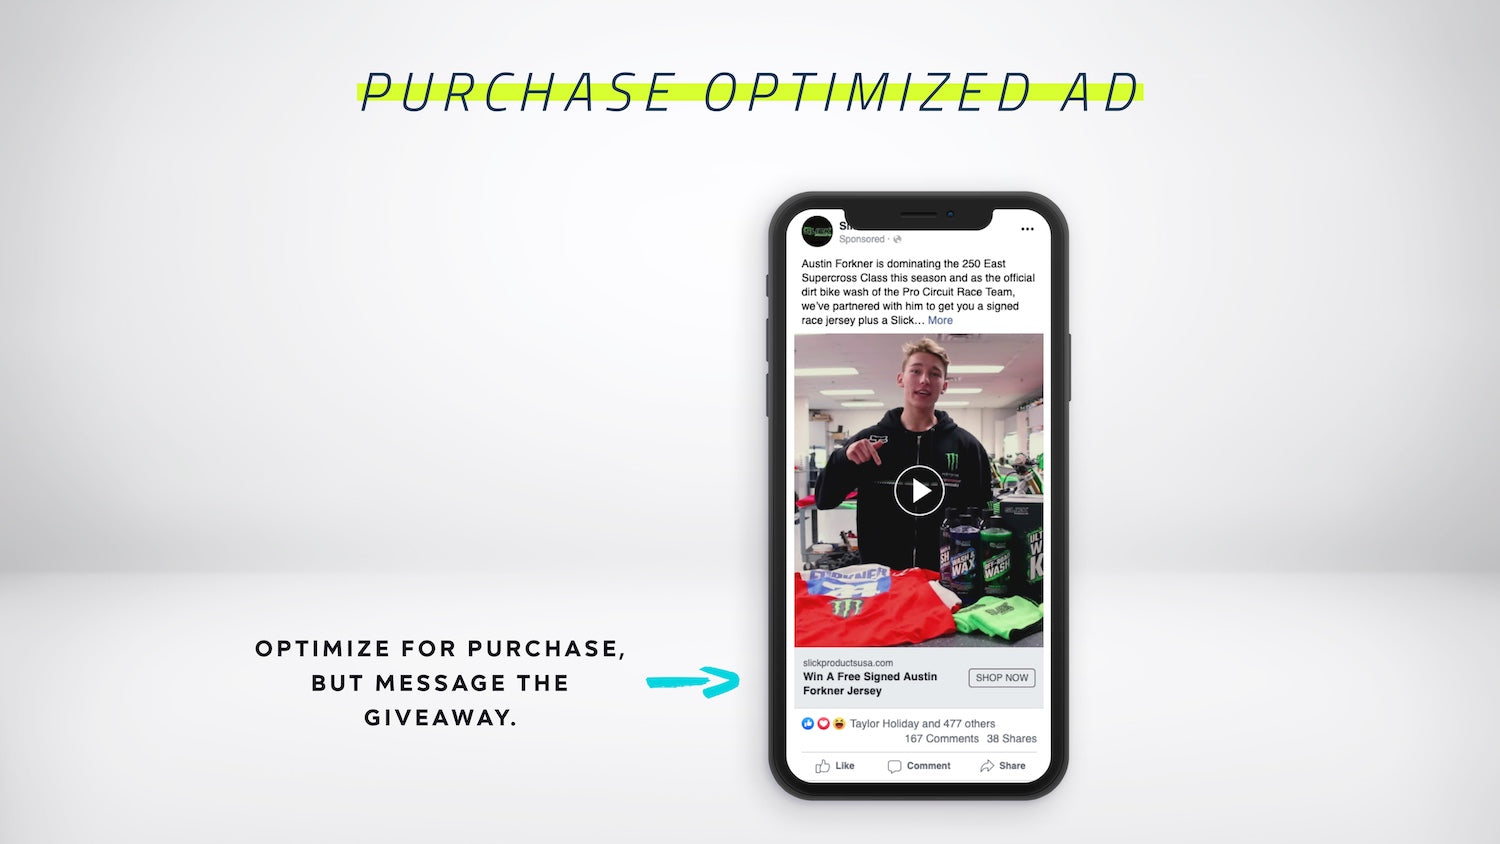 Purchase optimized ad to amplify the giveaway